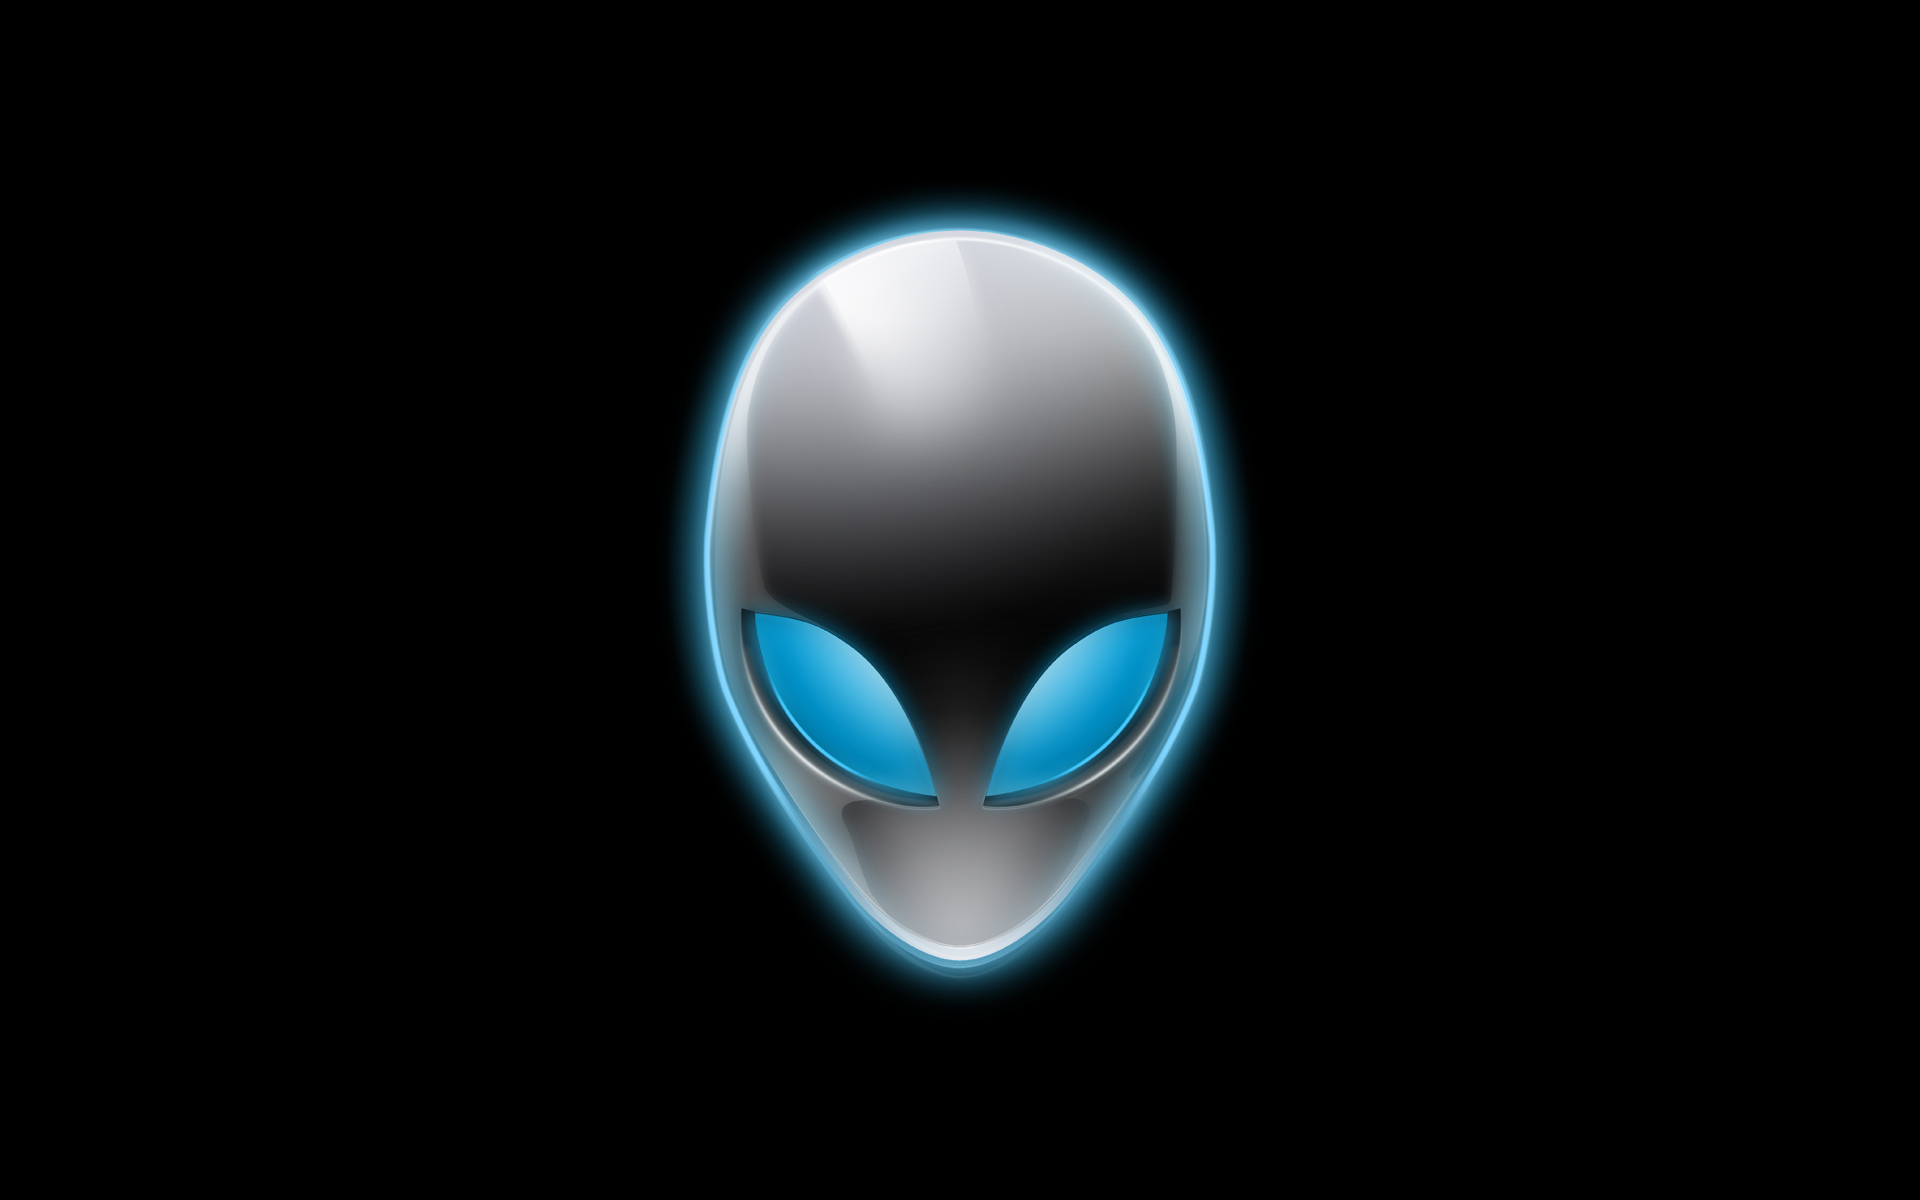 alienware wallpaper 1920x1200 1920x1200